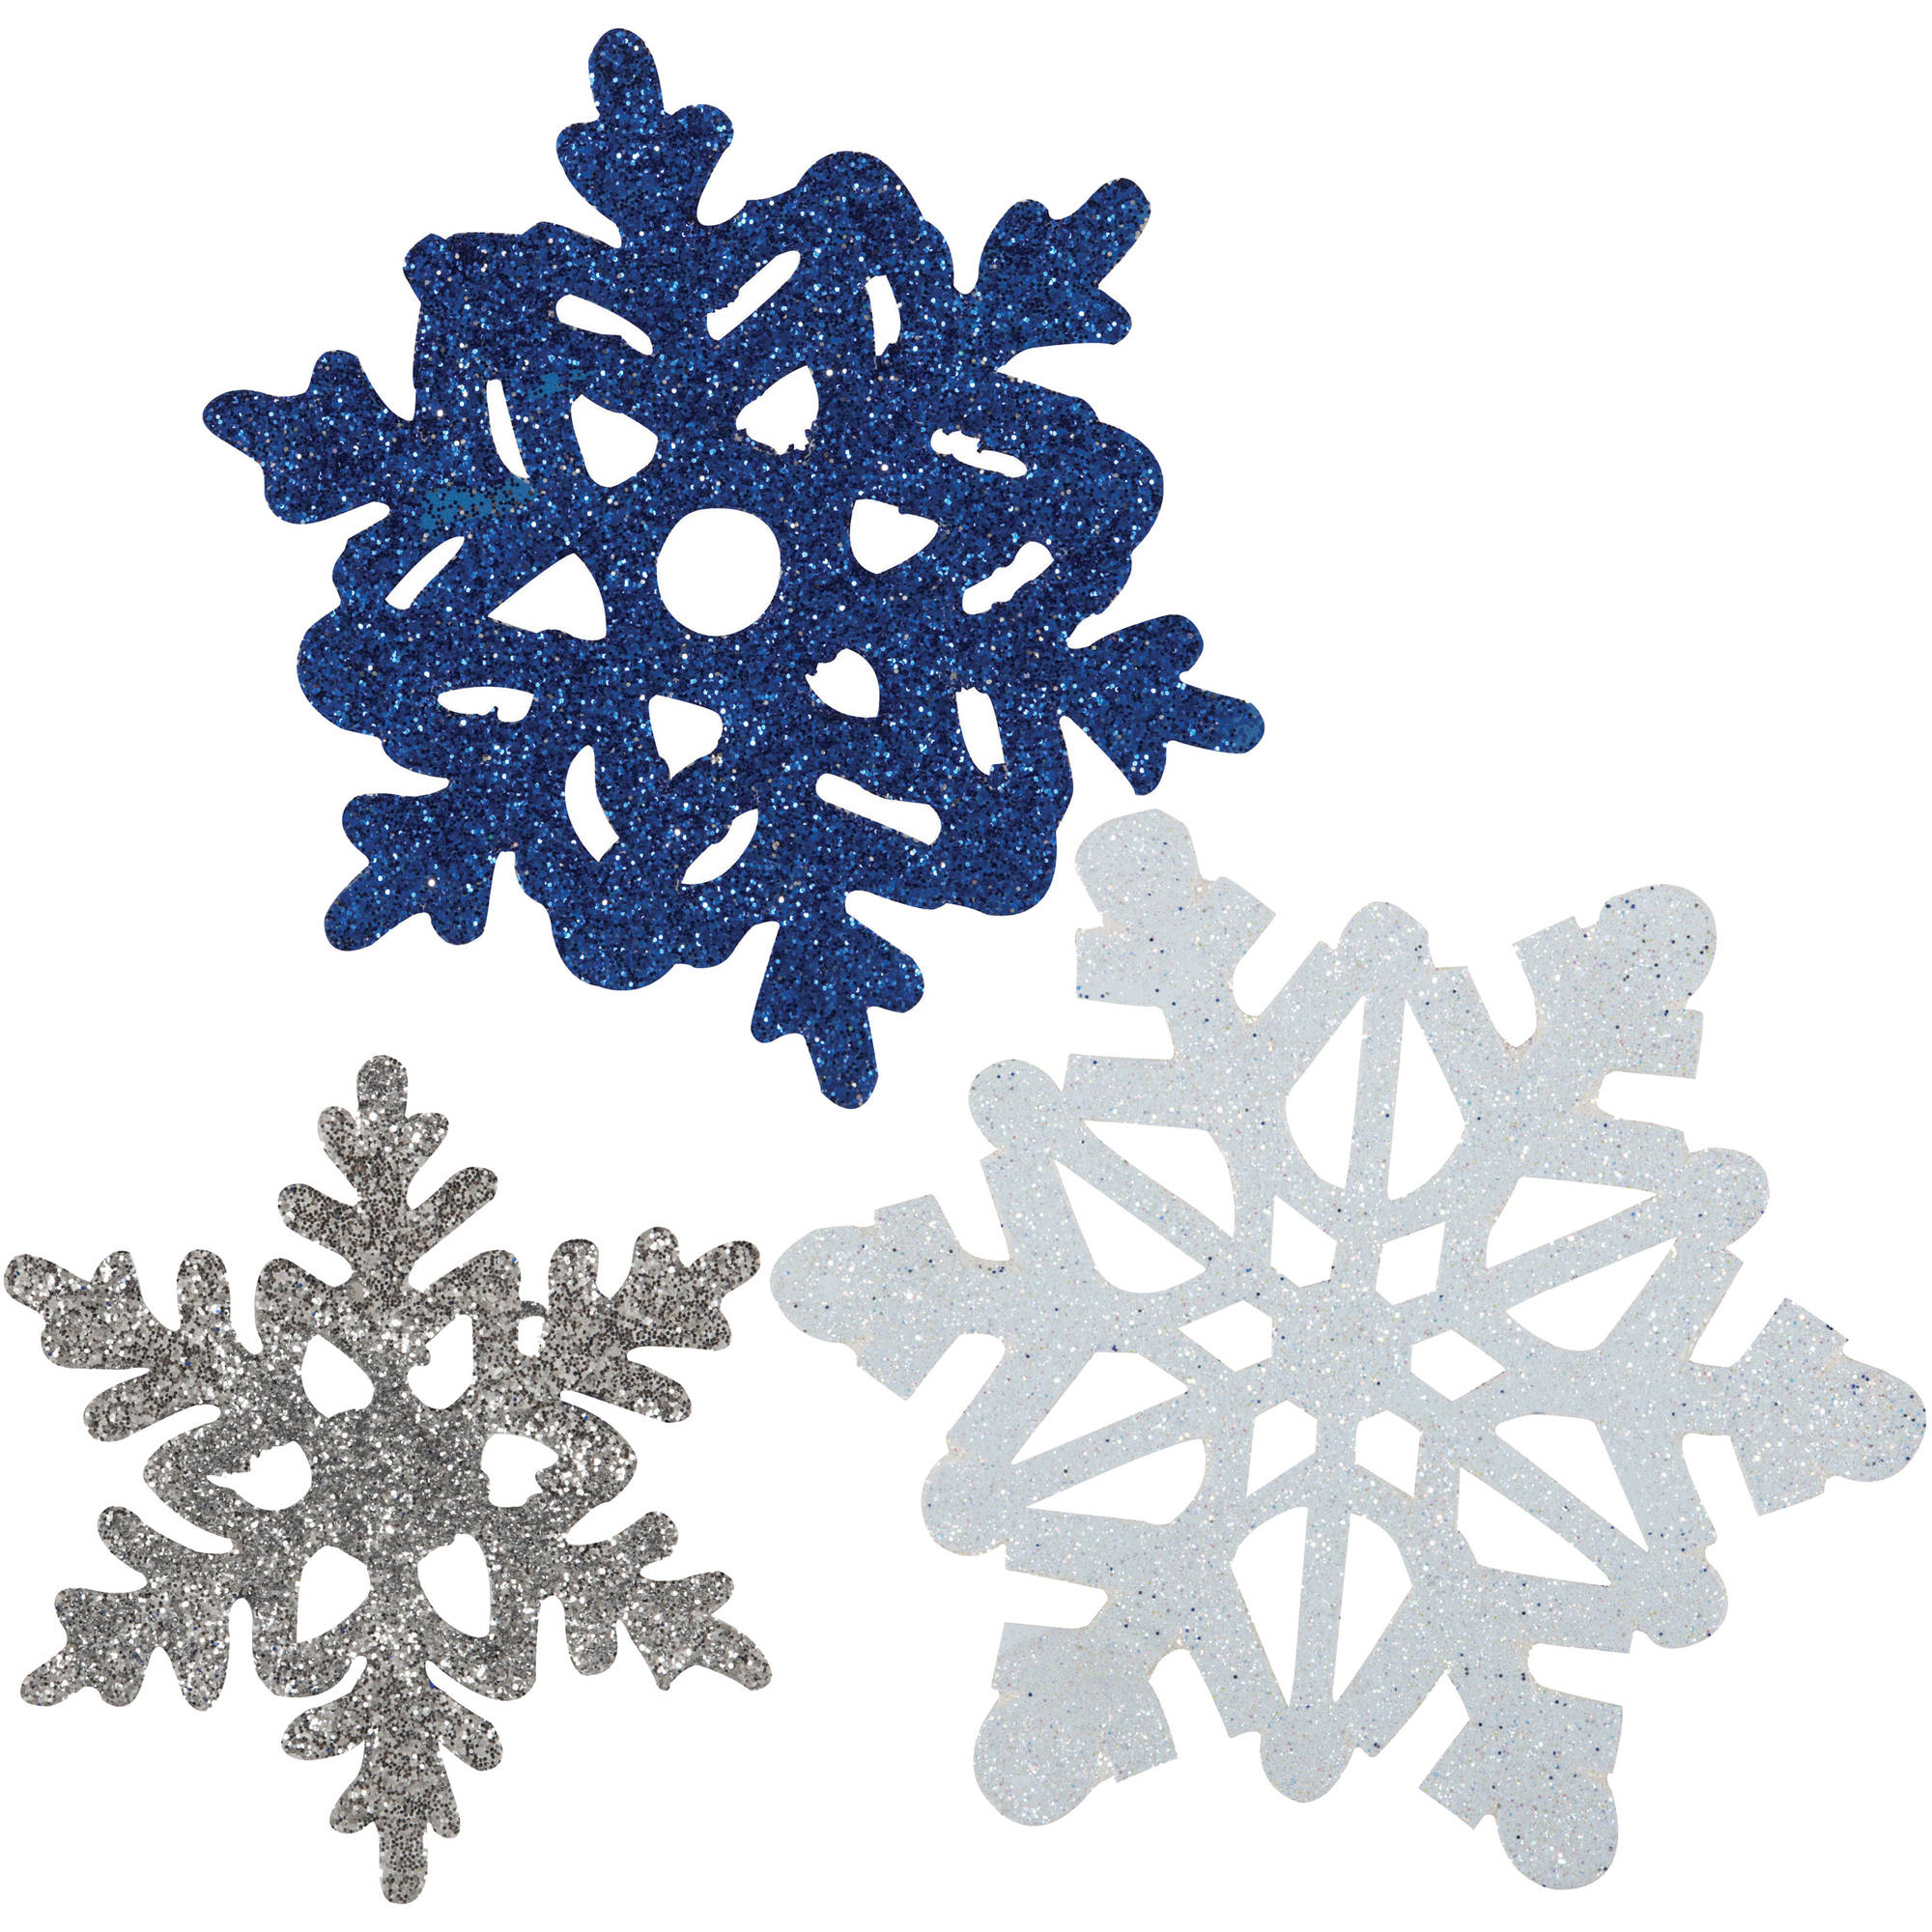 6 Christmas Winter white Blue Silver Snowflake Mini Glitter Cutout Decorations